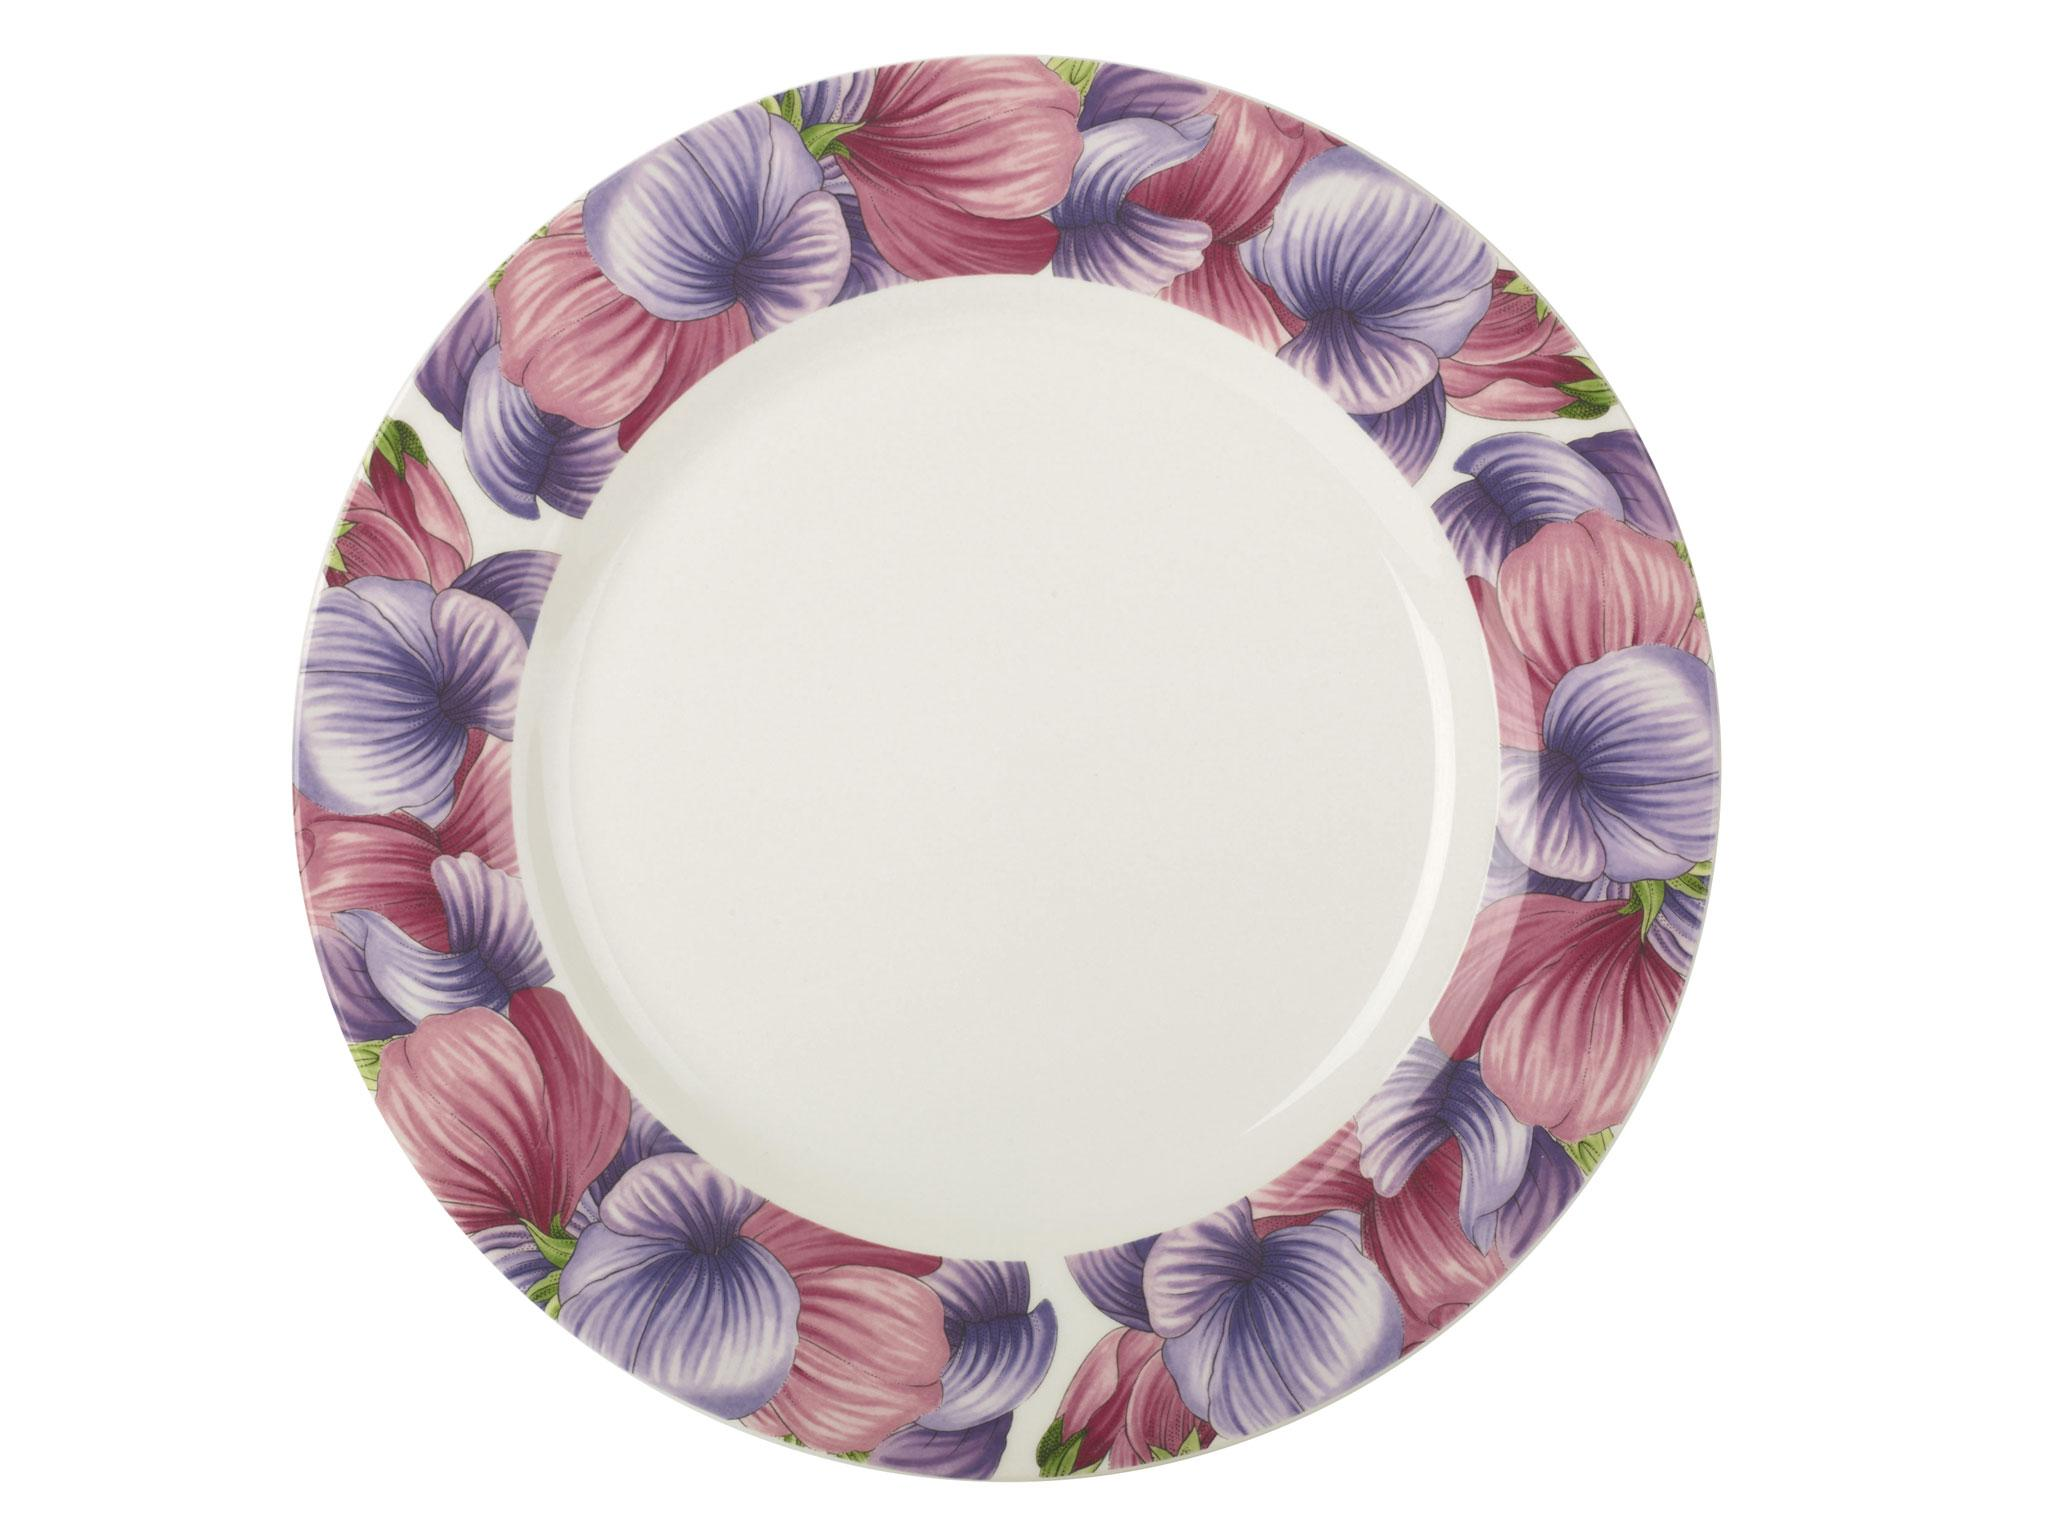 Portmeirion Botanic Blooms Sweet Pea dinner plate £10.99 per plate Portmeirion  sc 1 st  The Independent & 10 best plate sets | The Independent